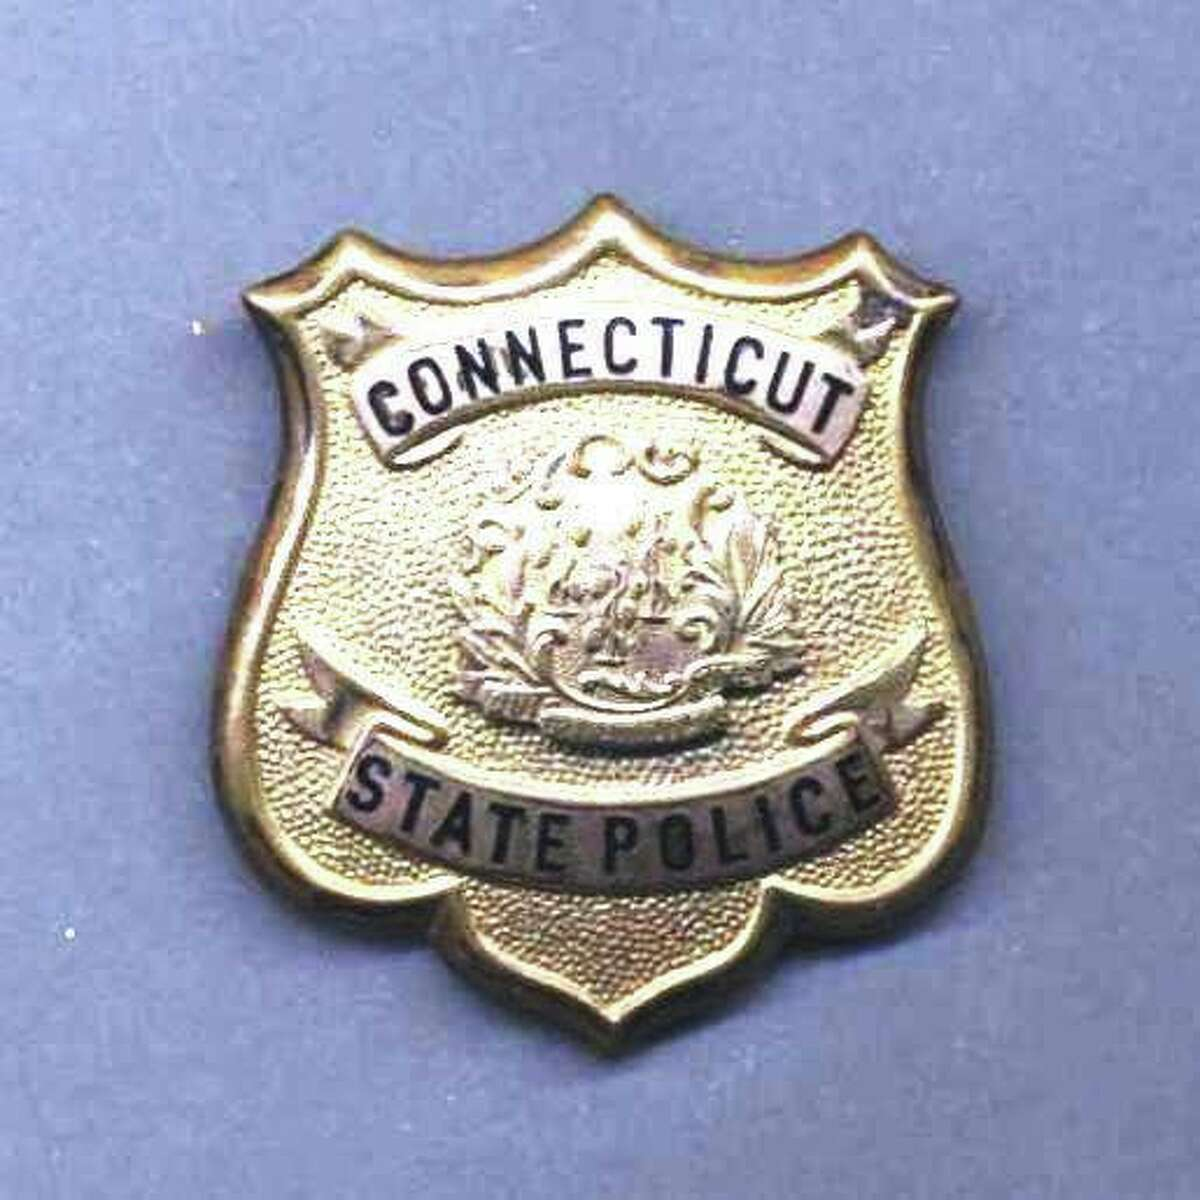 Connecticut State Police badge.